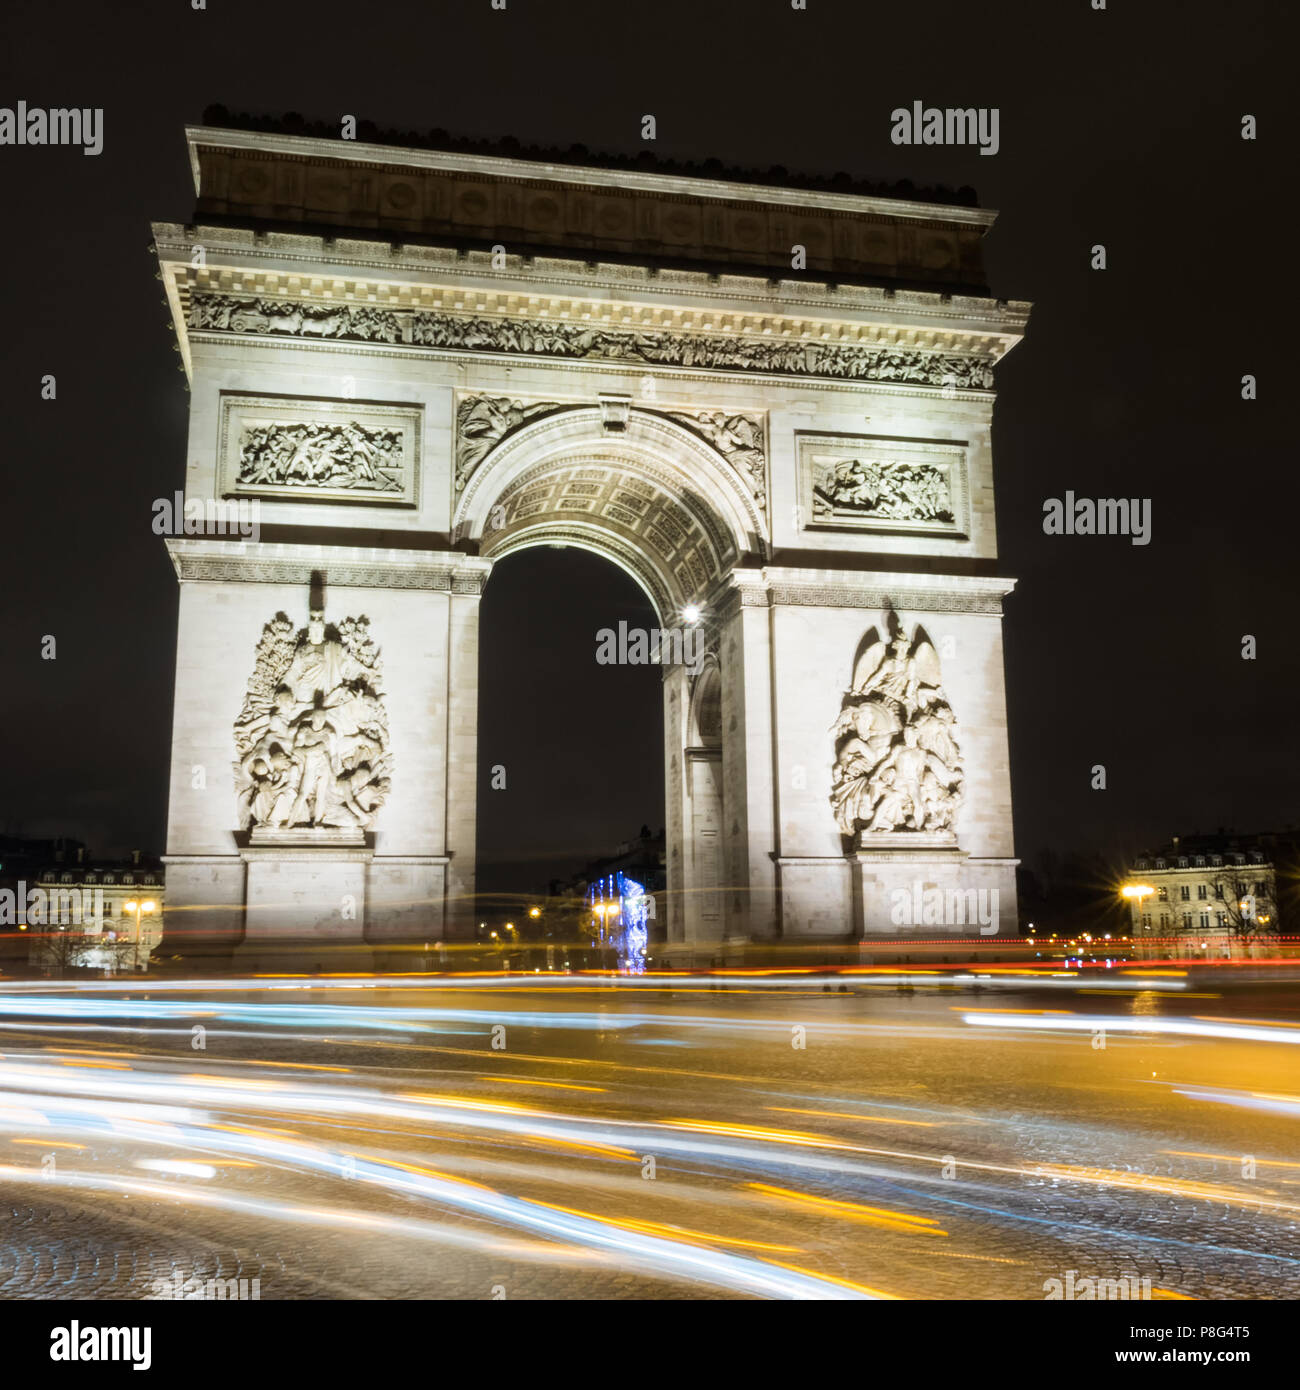 Arc de Triump at night, Paris, France Stock Photo